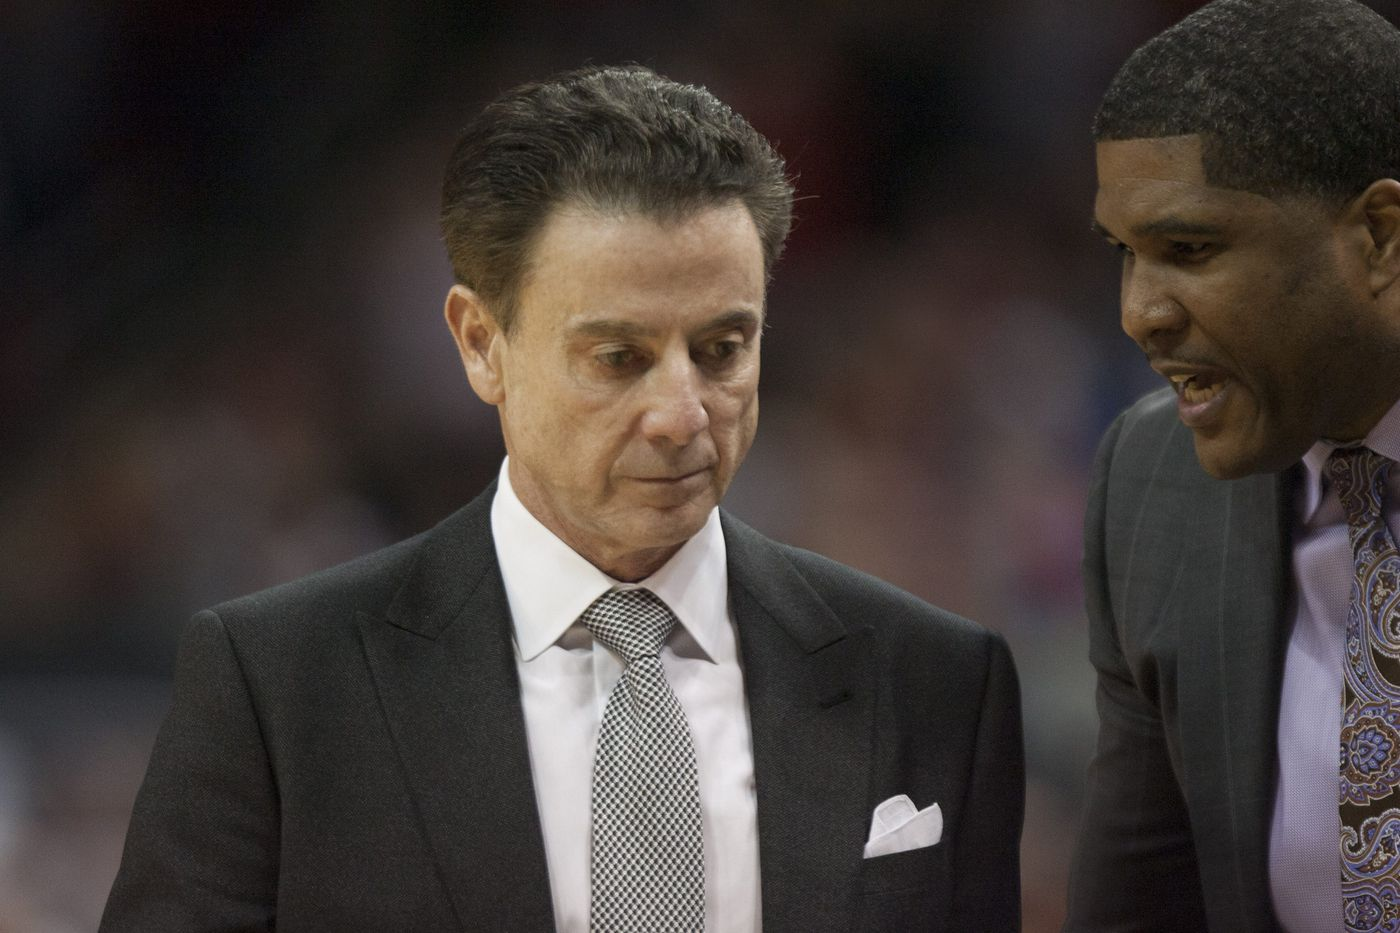 La Salle hoops assistant Kenny Johnson mentioned in deposition for Rick Pitino lawsuit | Mike Jensen